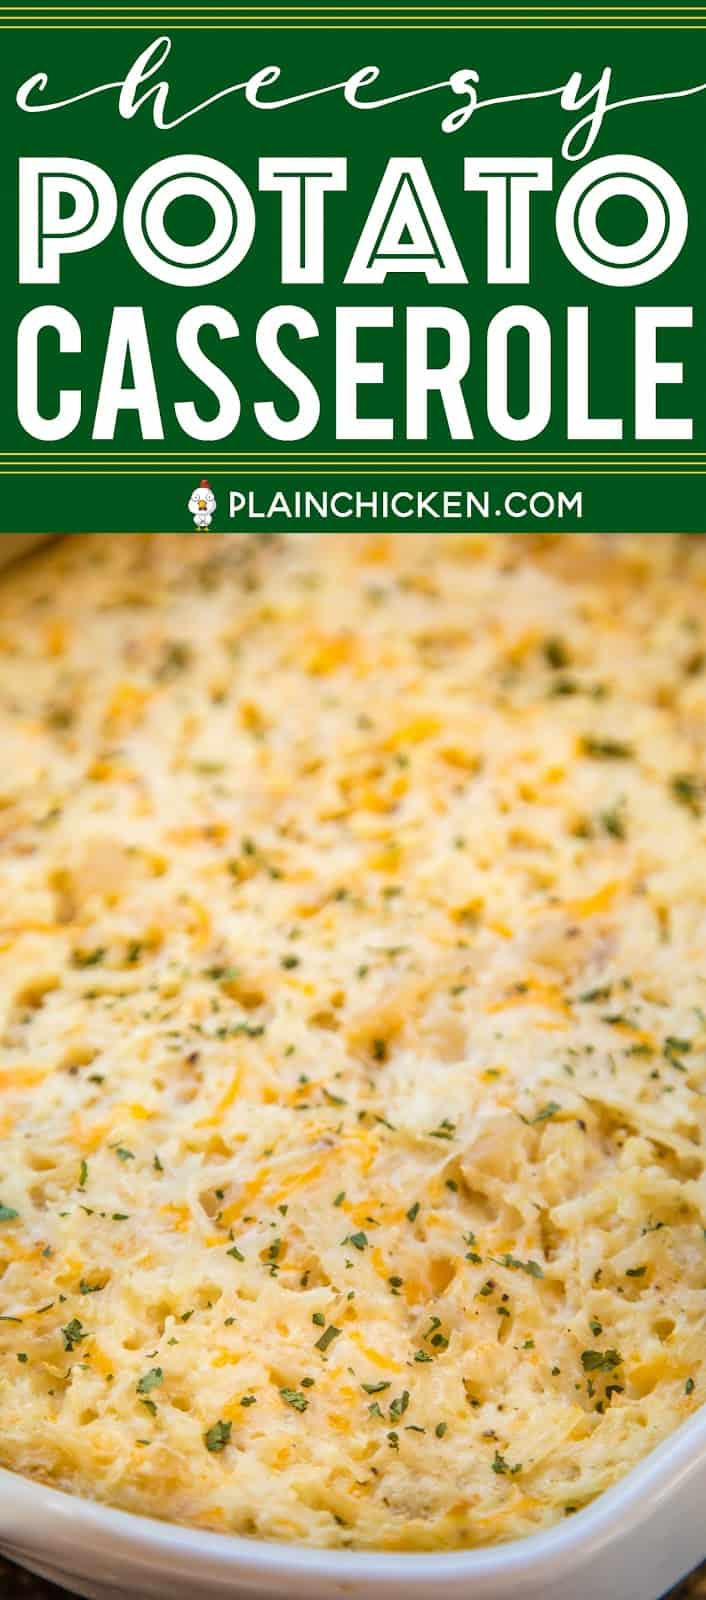 Cheesy Potato Casserole - dangerously delicious!!!! Loaded with three different types of cheeses - cheddar, parmesan and swiss. Can make ahead and freeze for later!! Hash browns, sour cream, Cream of Potato soup, garlic, pepper, cheddar, parmesan and swiss. Great for parties and potlucks. The most requested potato casserole in our house! #casserole #potatoes #freezermeal #sidedish #cheese